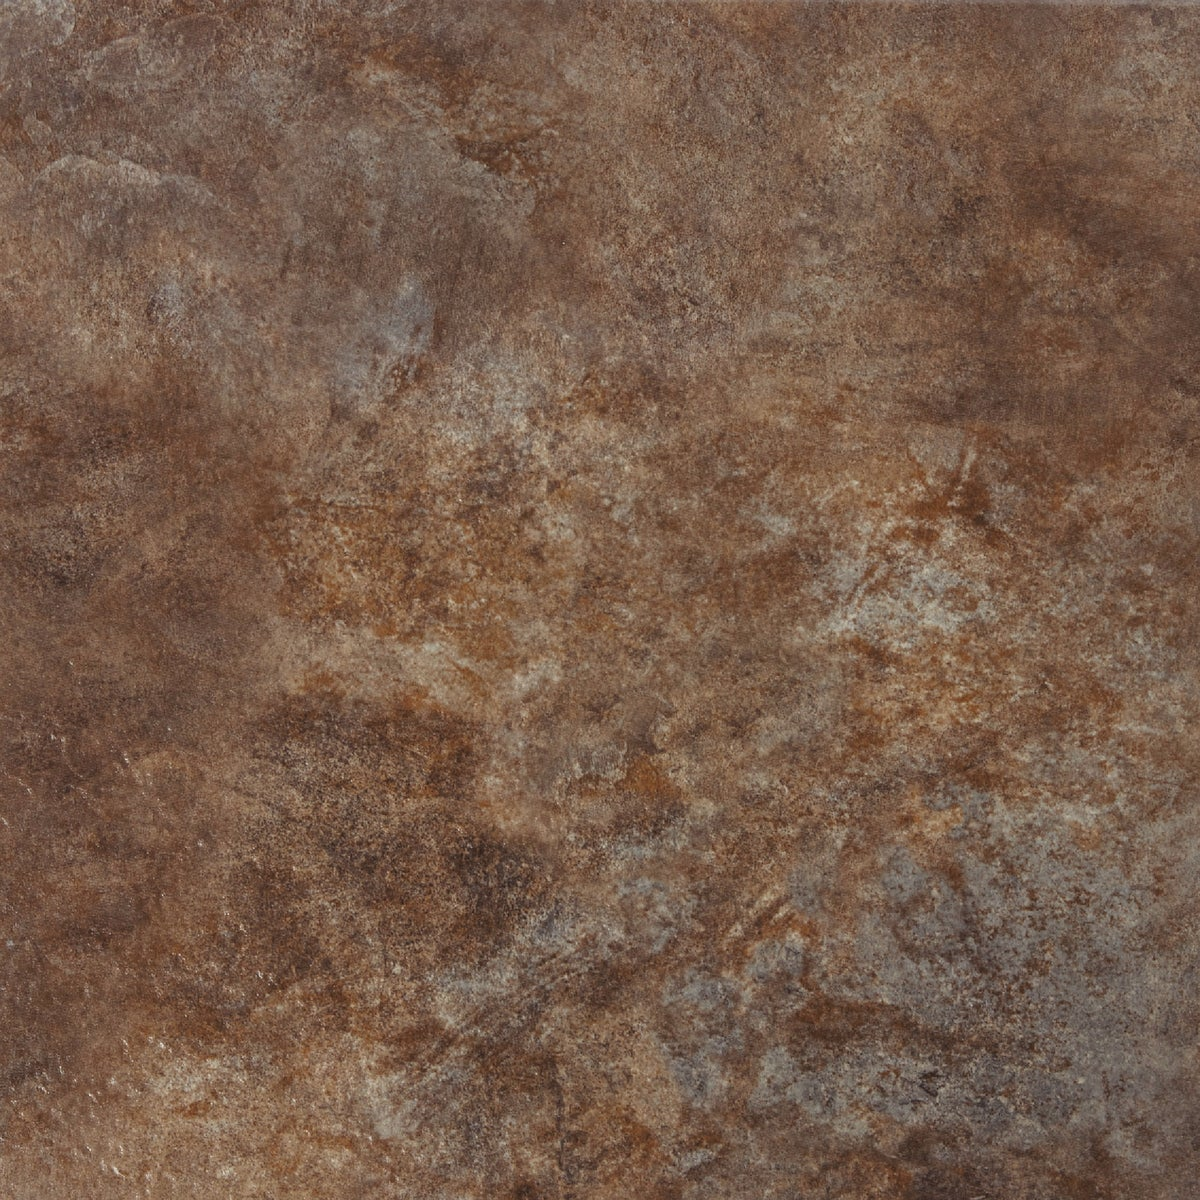 OVATIONS BROWN - C8005-TE-49 by Mohawk Duraceramic